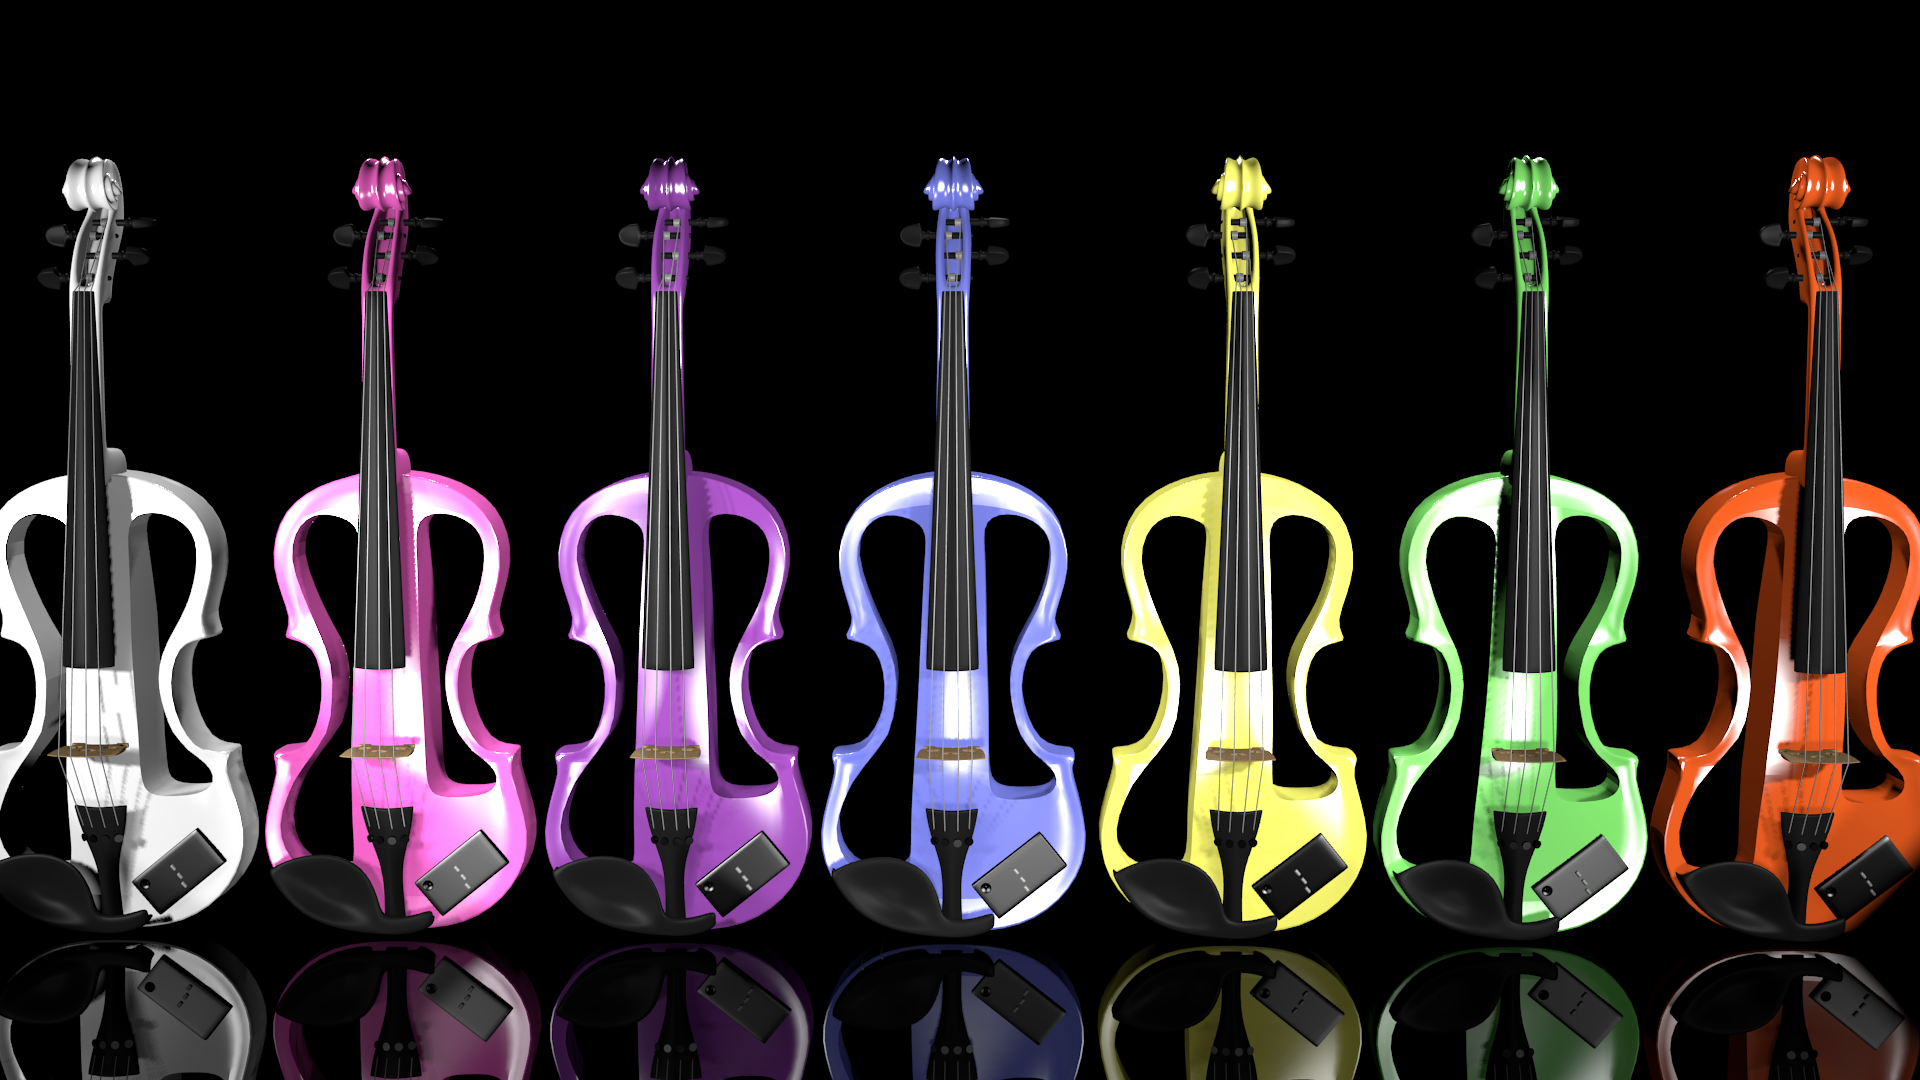 2 Violin and colours10200